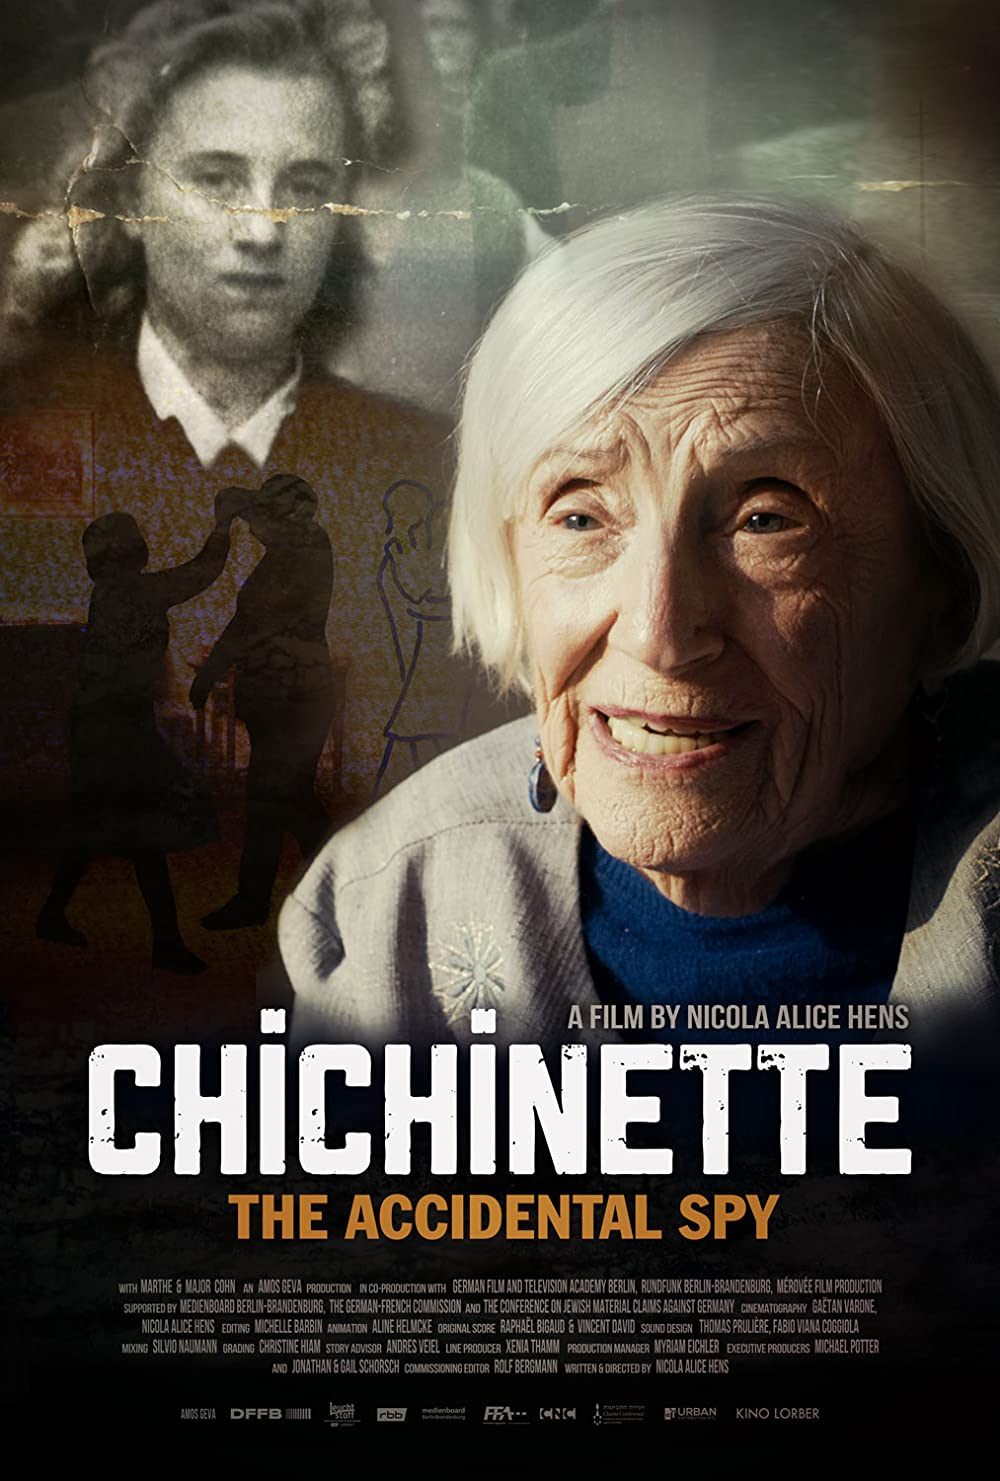 Chichinette: The Accidental Spy| Watch Movies Online